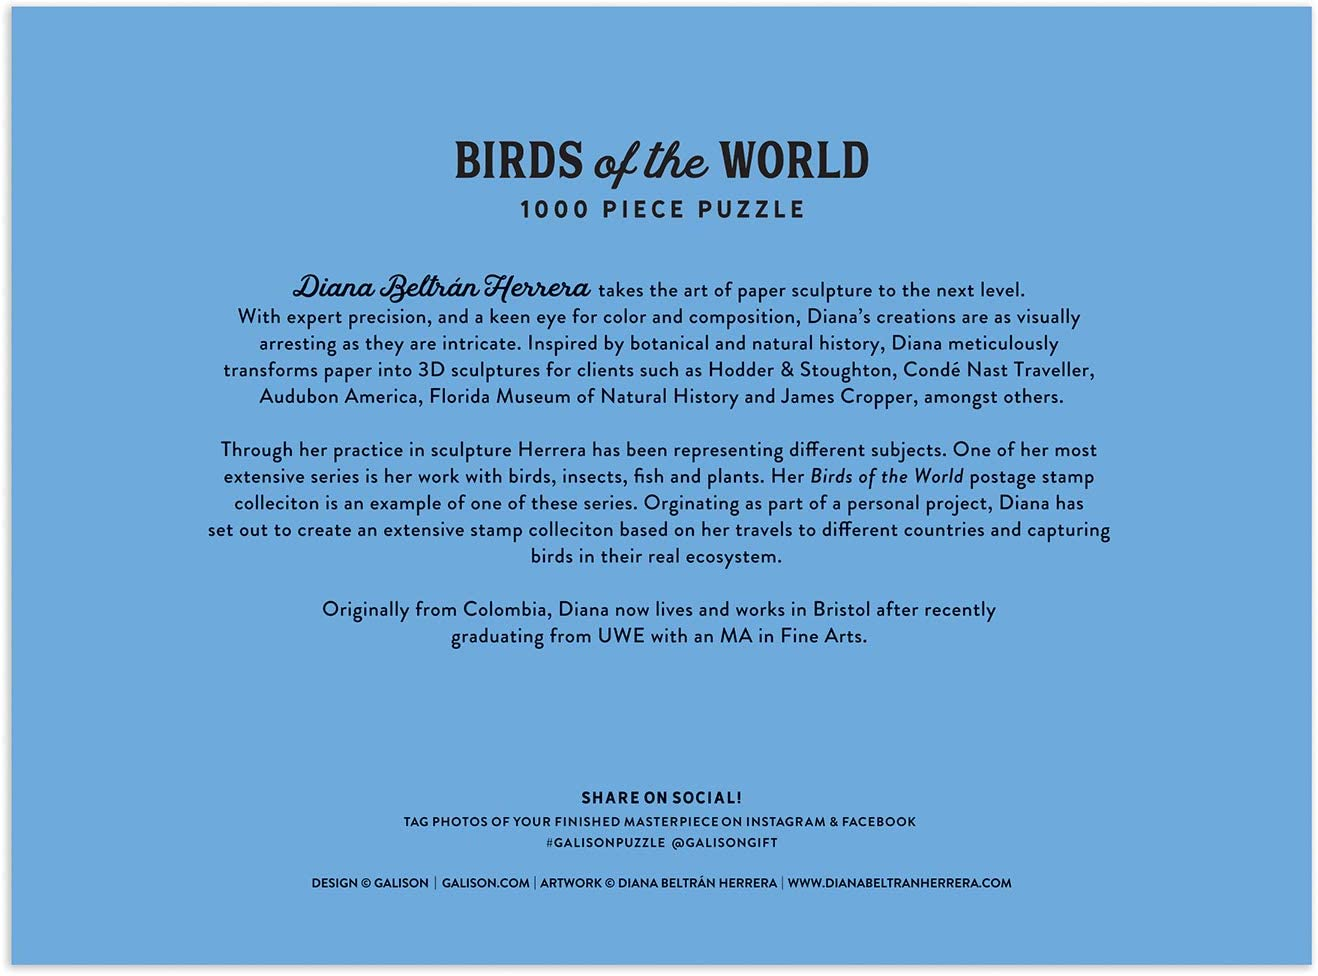 """Challenging Family Activity Makes a Great Gift Galison Birds of The World Puzzle 27/"""" x 20 1,000 Pieces Thick Jigsaw Puzzle Featuring Artwork from Diana Beltr/án Herrera Sturdy Pieces"""